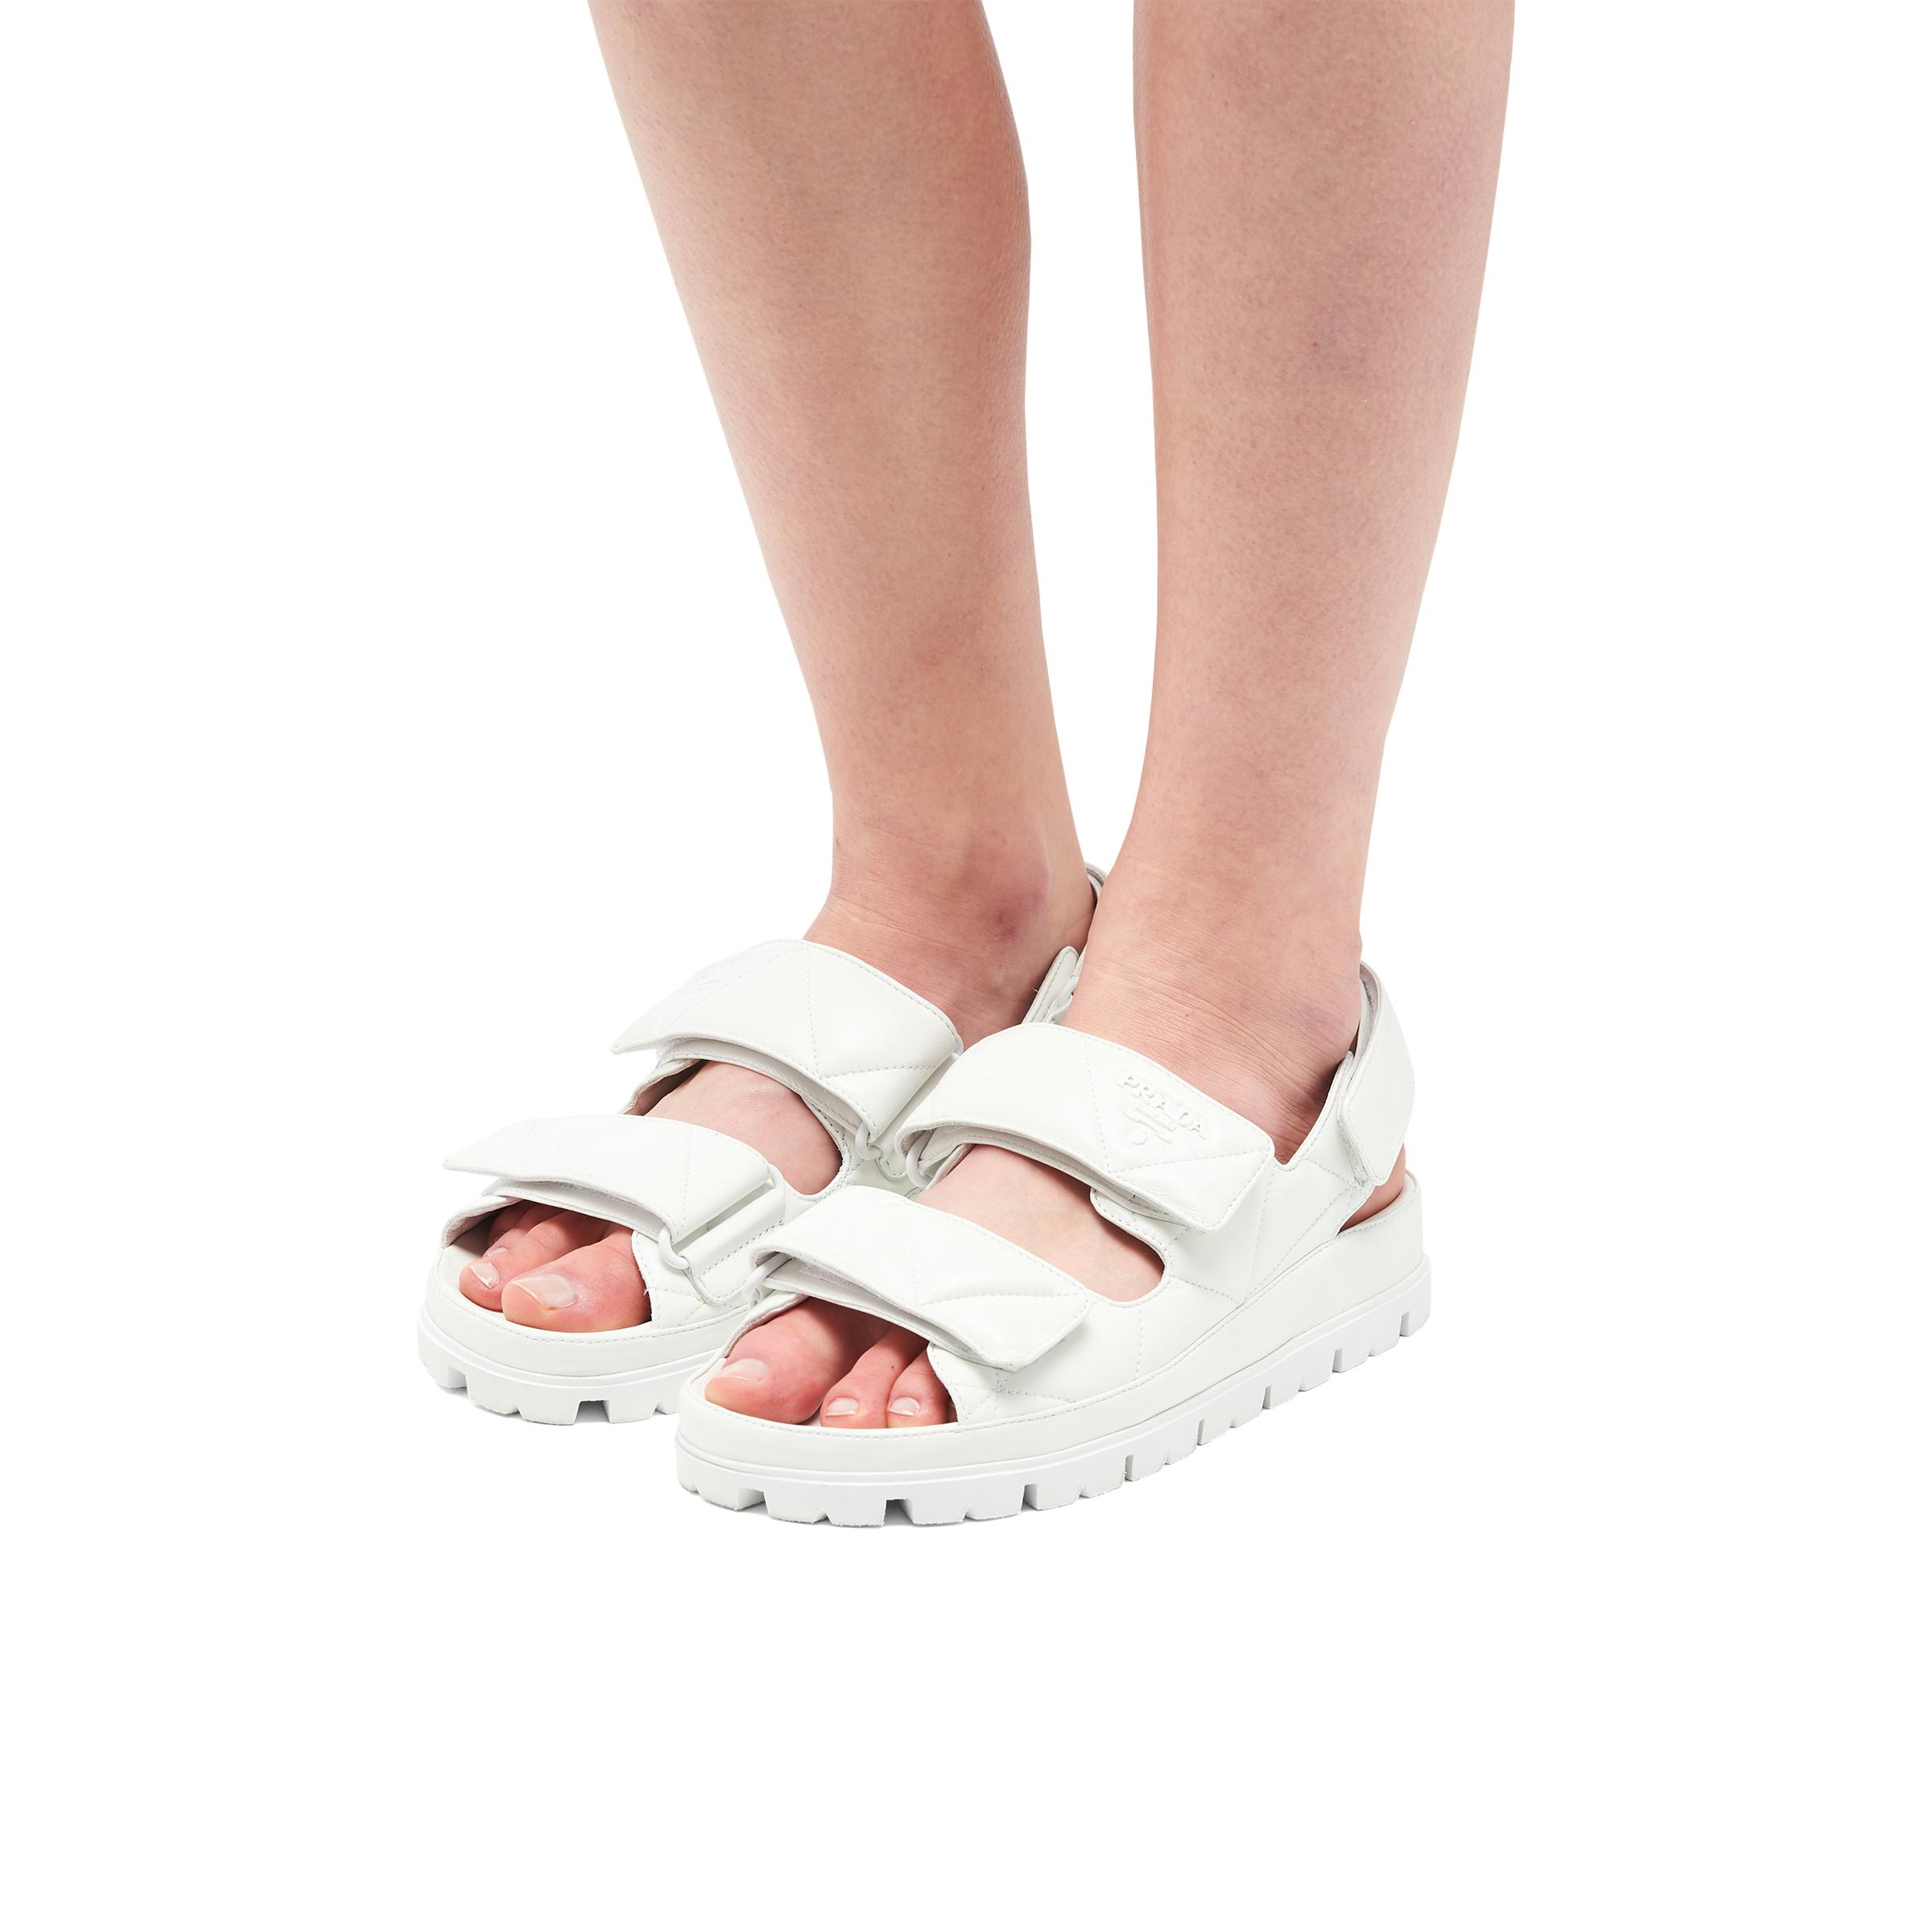 Padded Nappa Leather Sandals Women White 4